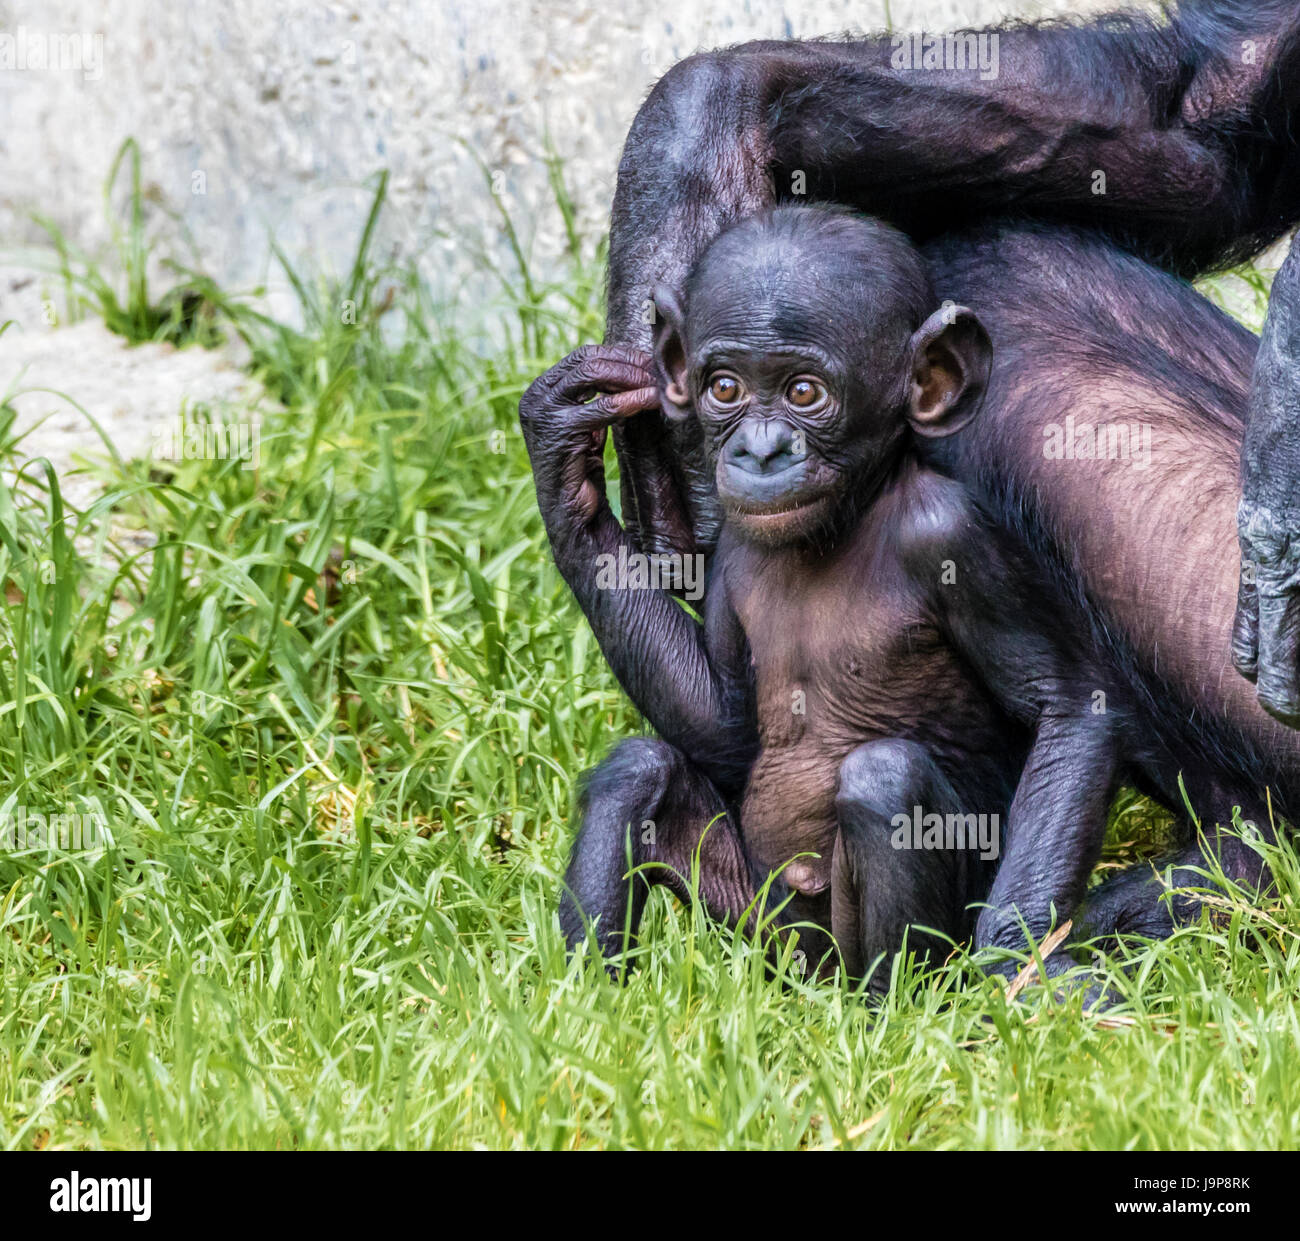 A curious baby Bonobo Ape observes his surroundings, mom close by - Stock Image